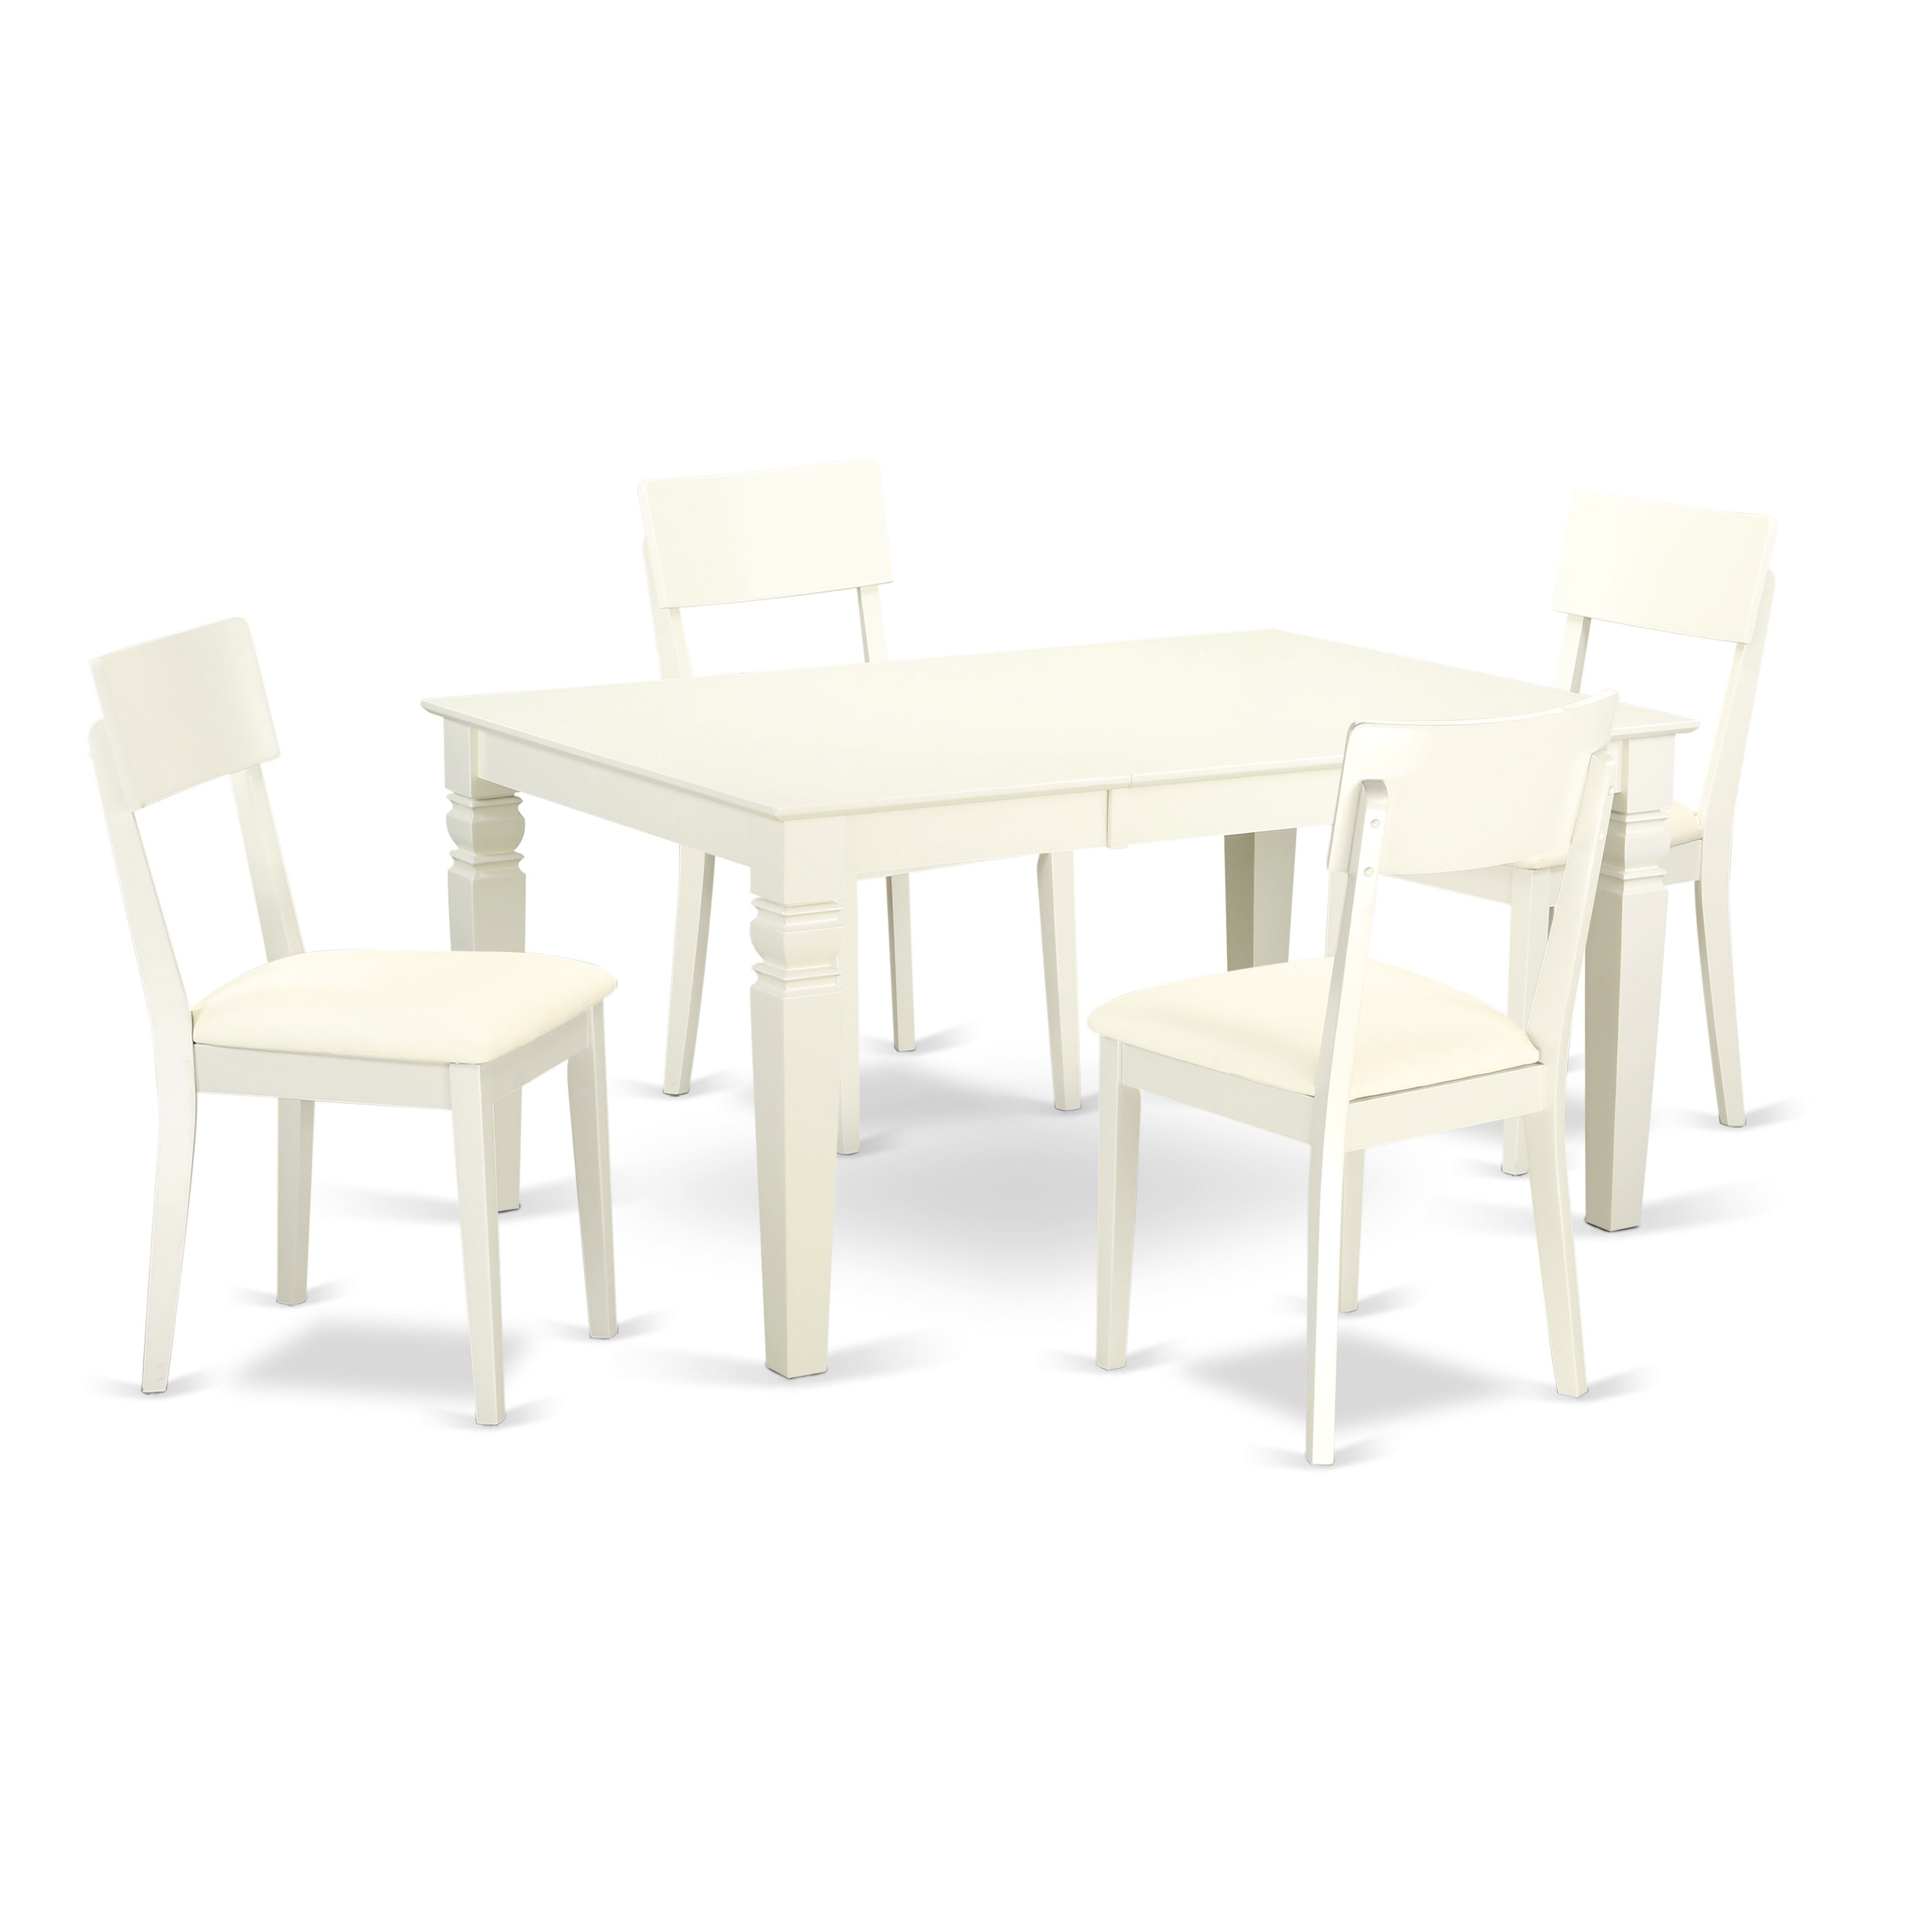 Exceptionnel East West Furniture Weston 7 Piece Extending Dining Table Set With Faux  Leather Seat Chairs   Linen White